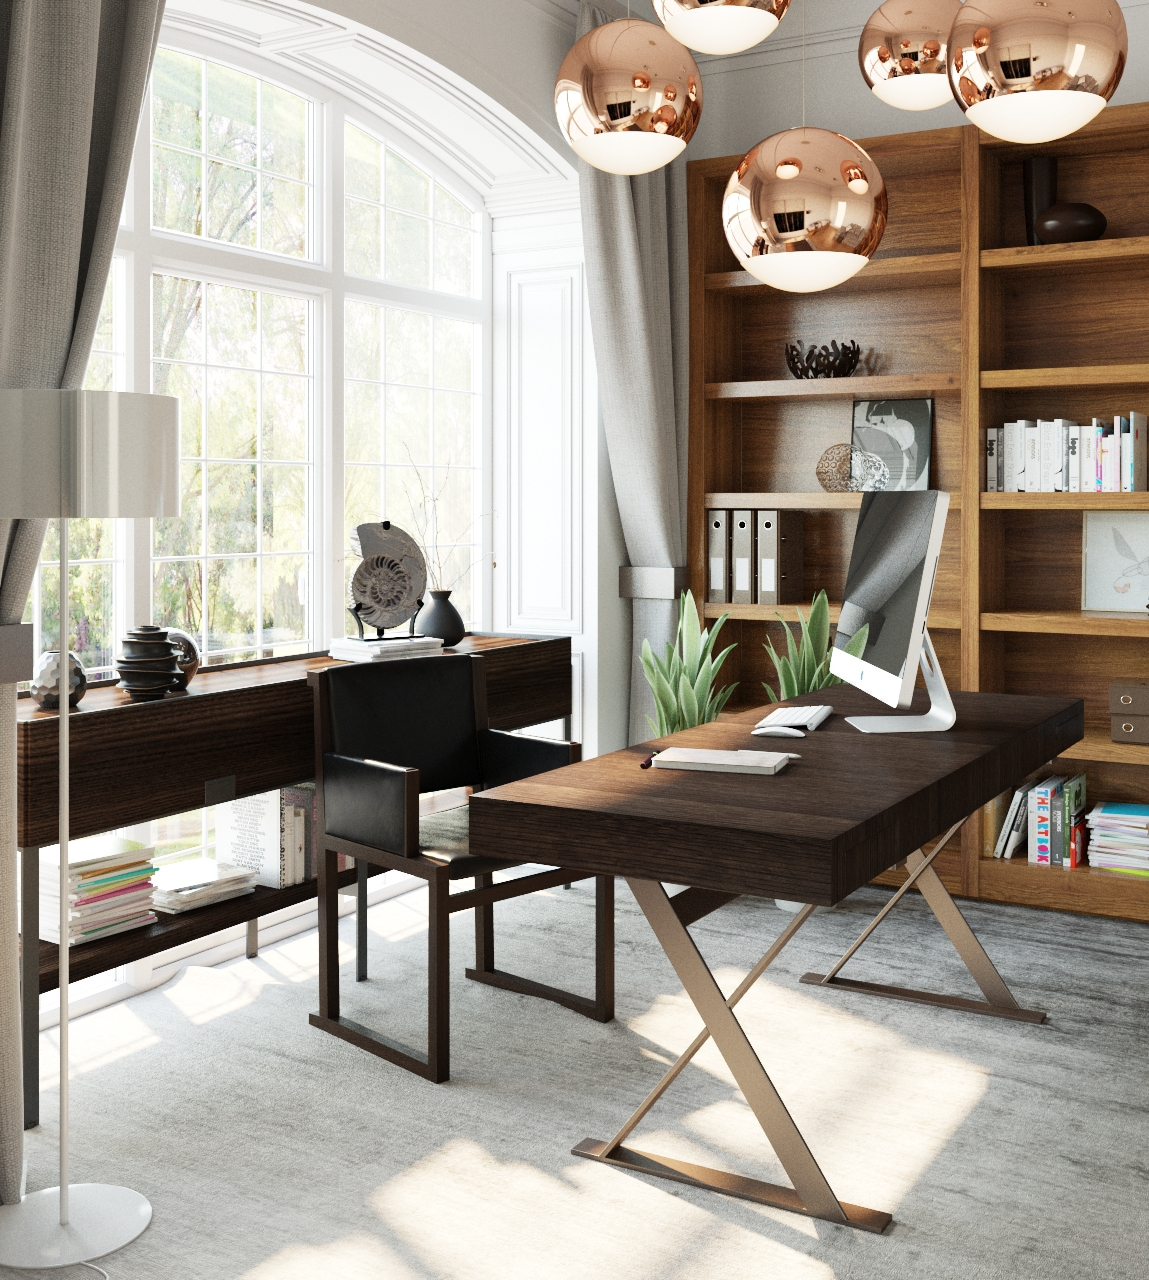 Home Design Ideas Buch: 35 Modern Home Office Design Ideas